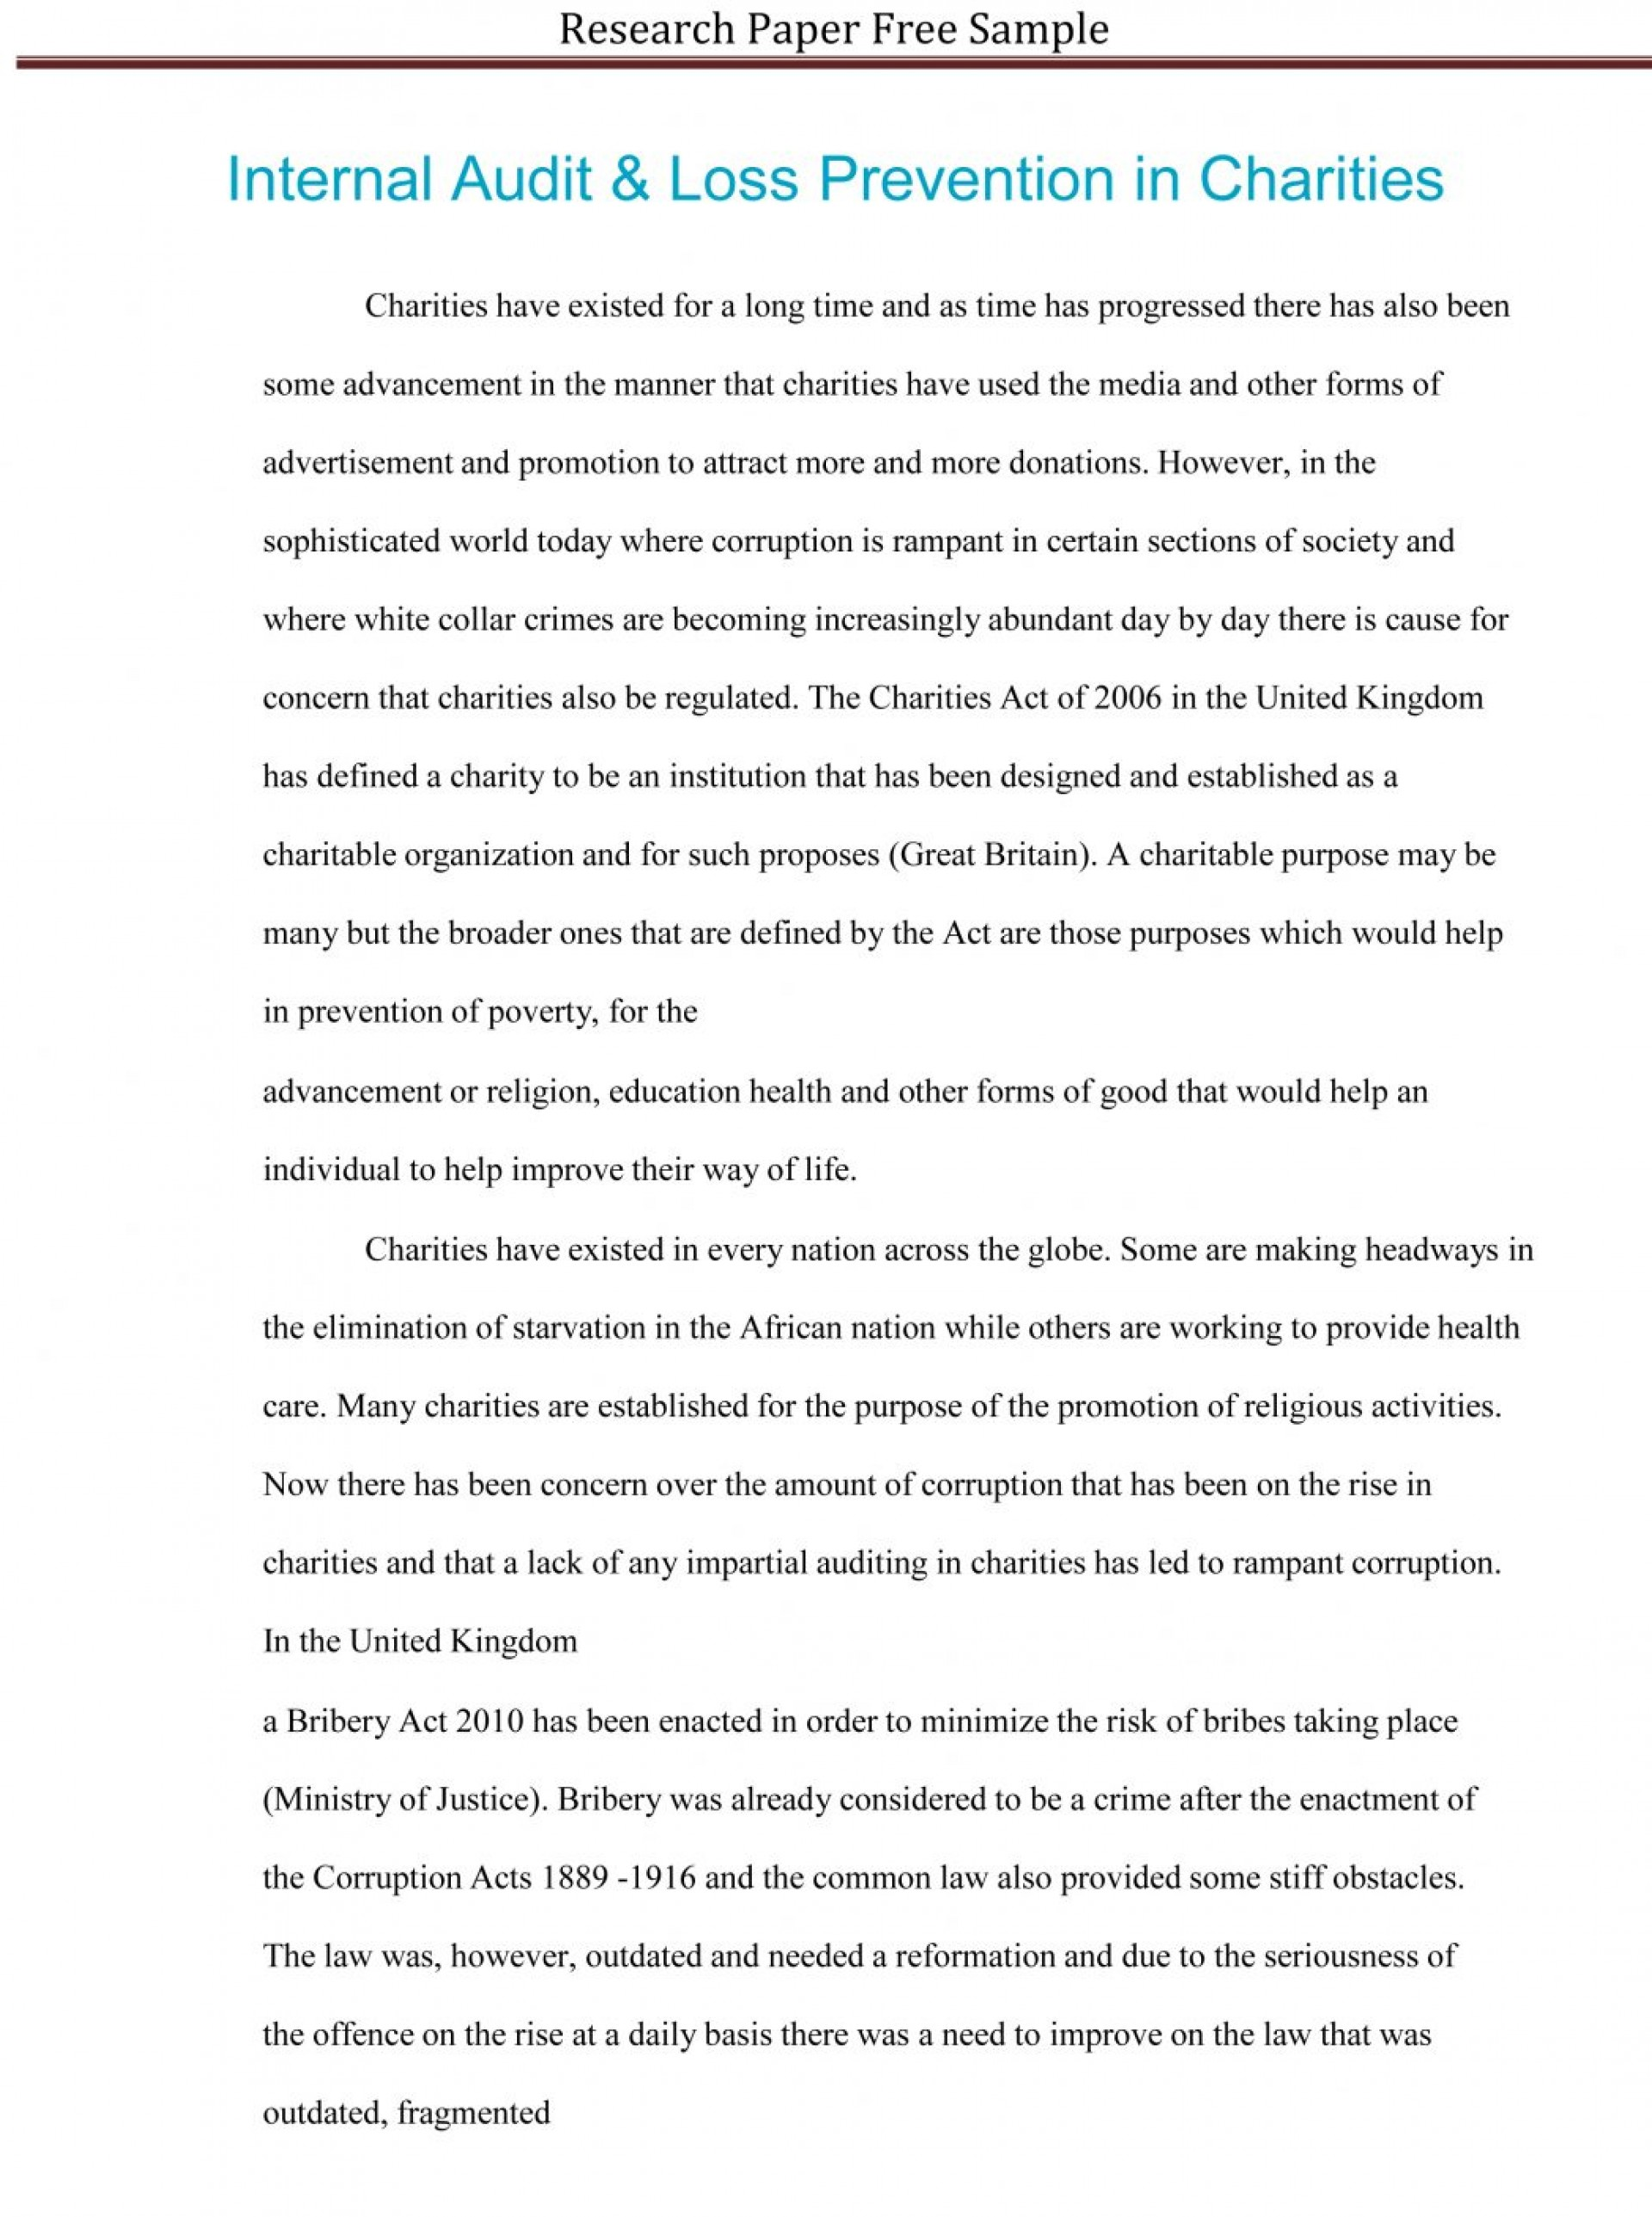 003 Research Paper Essay Example Examples Writing Based Informative About Language S Quizlet Will Teach You Fundamentally Is Challenging Your When Why Synthesizing Sources Important Introduction Unusual Format Pdf Papers Tagalog 1920